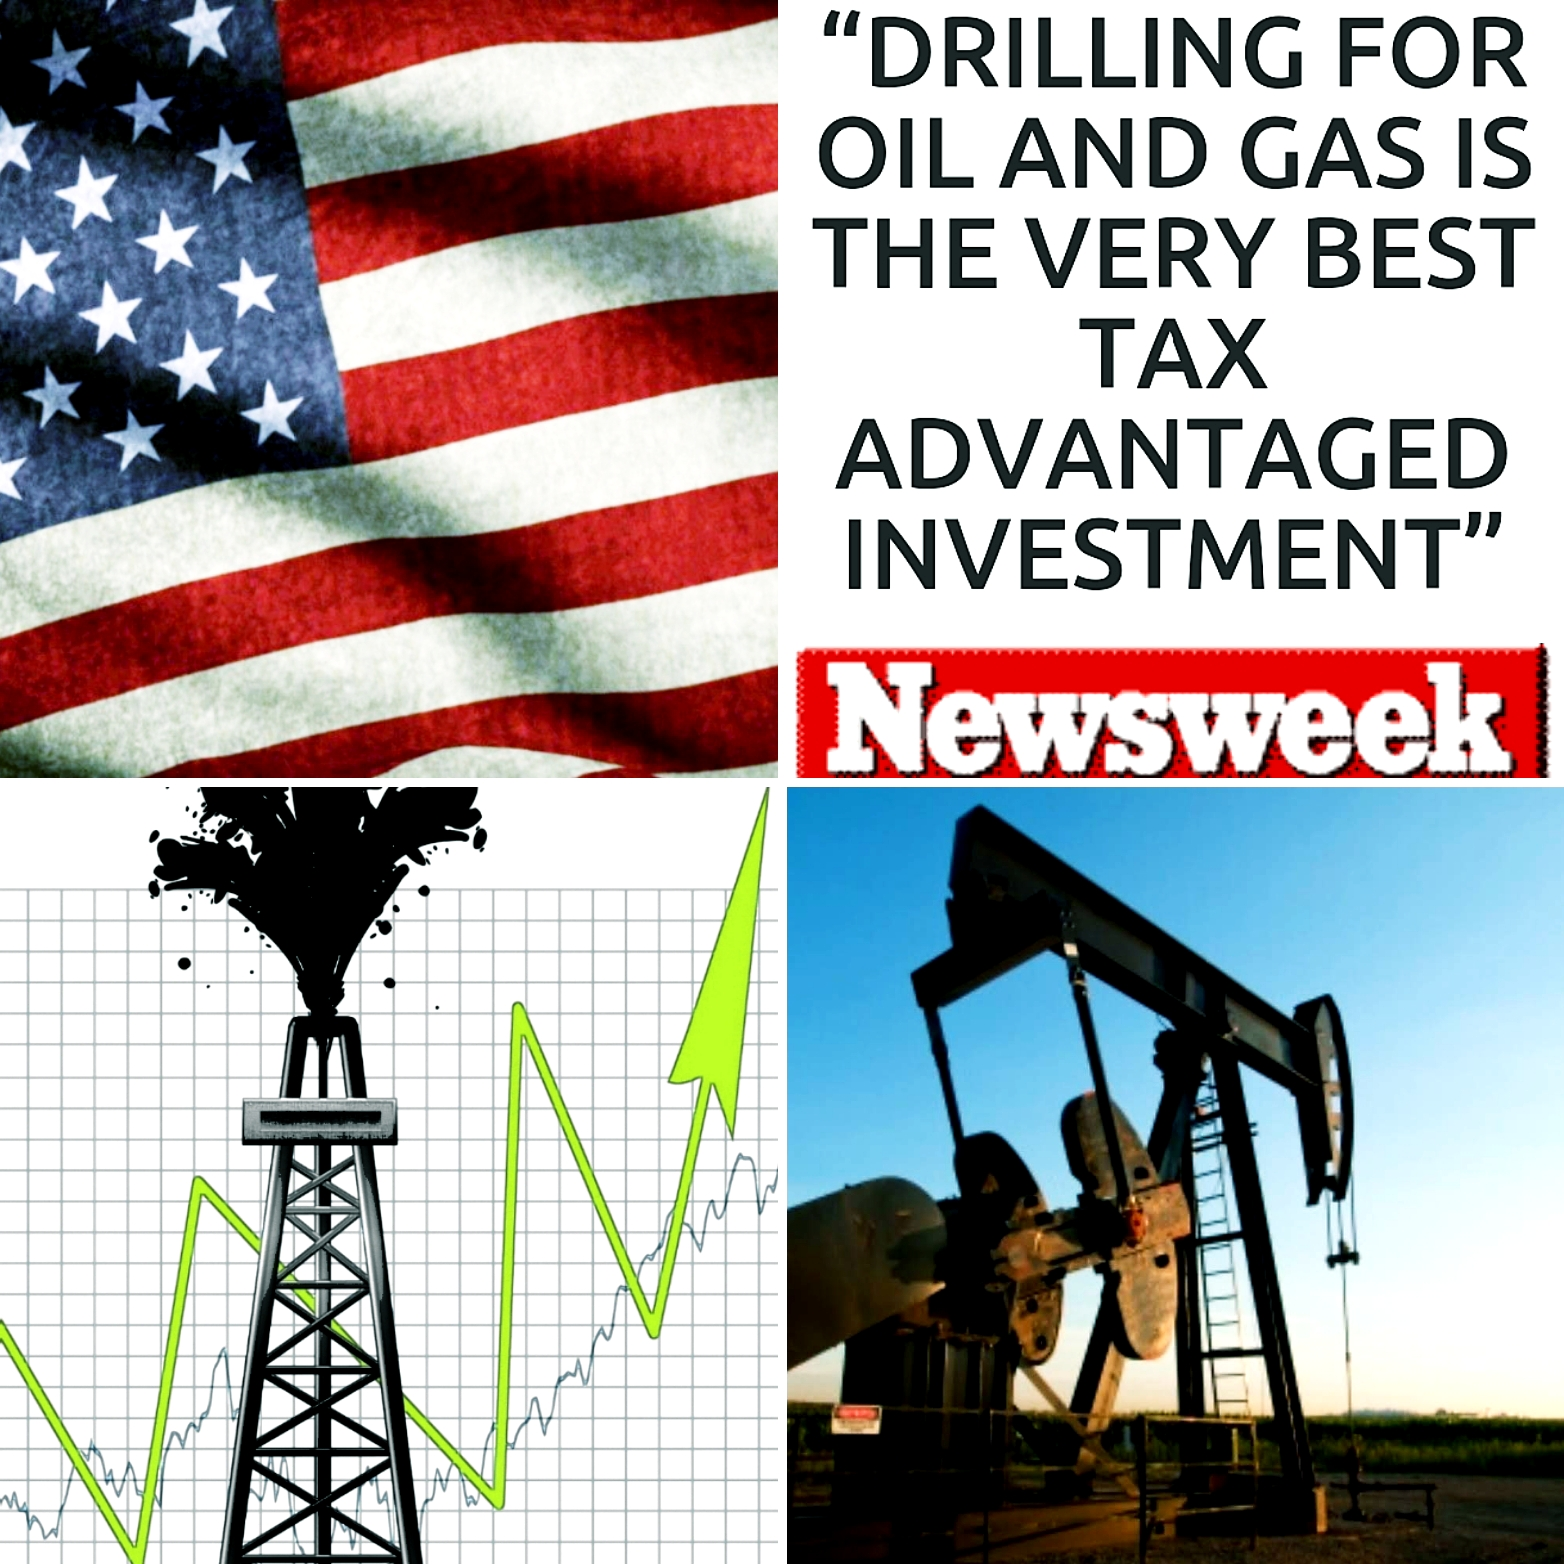 American Oil and Gas Investment Collage Photo